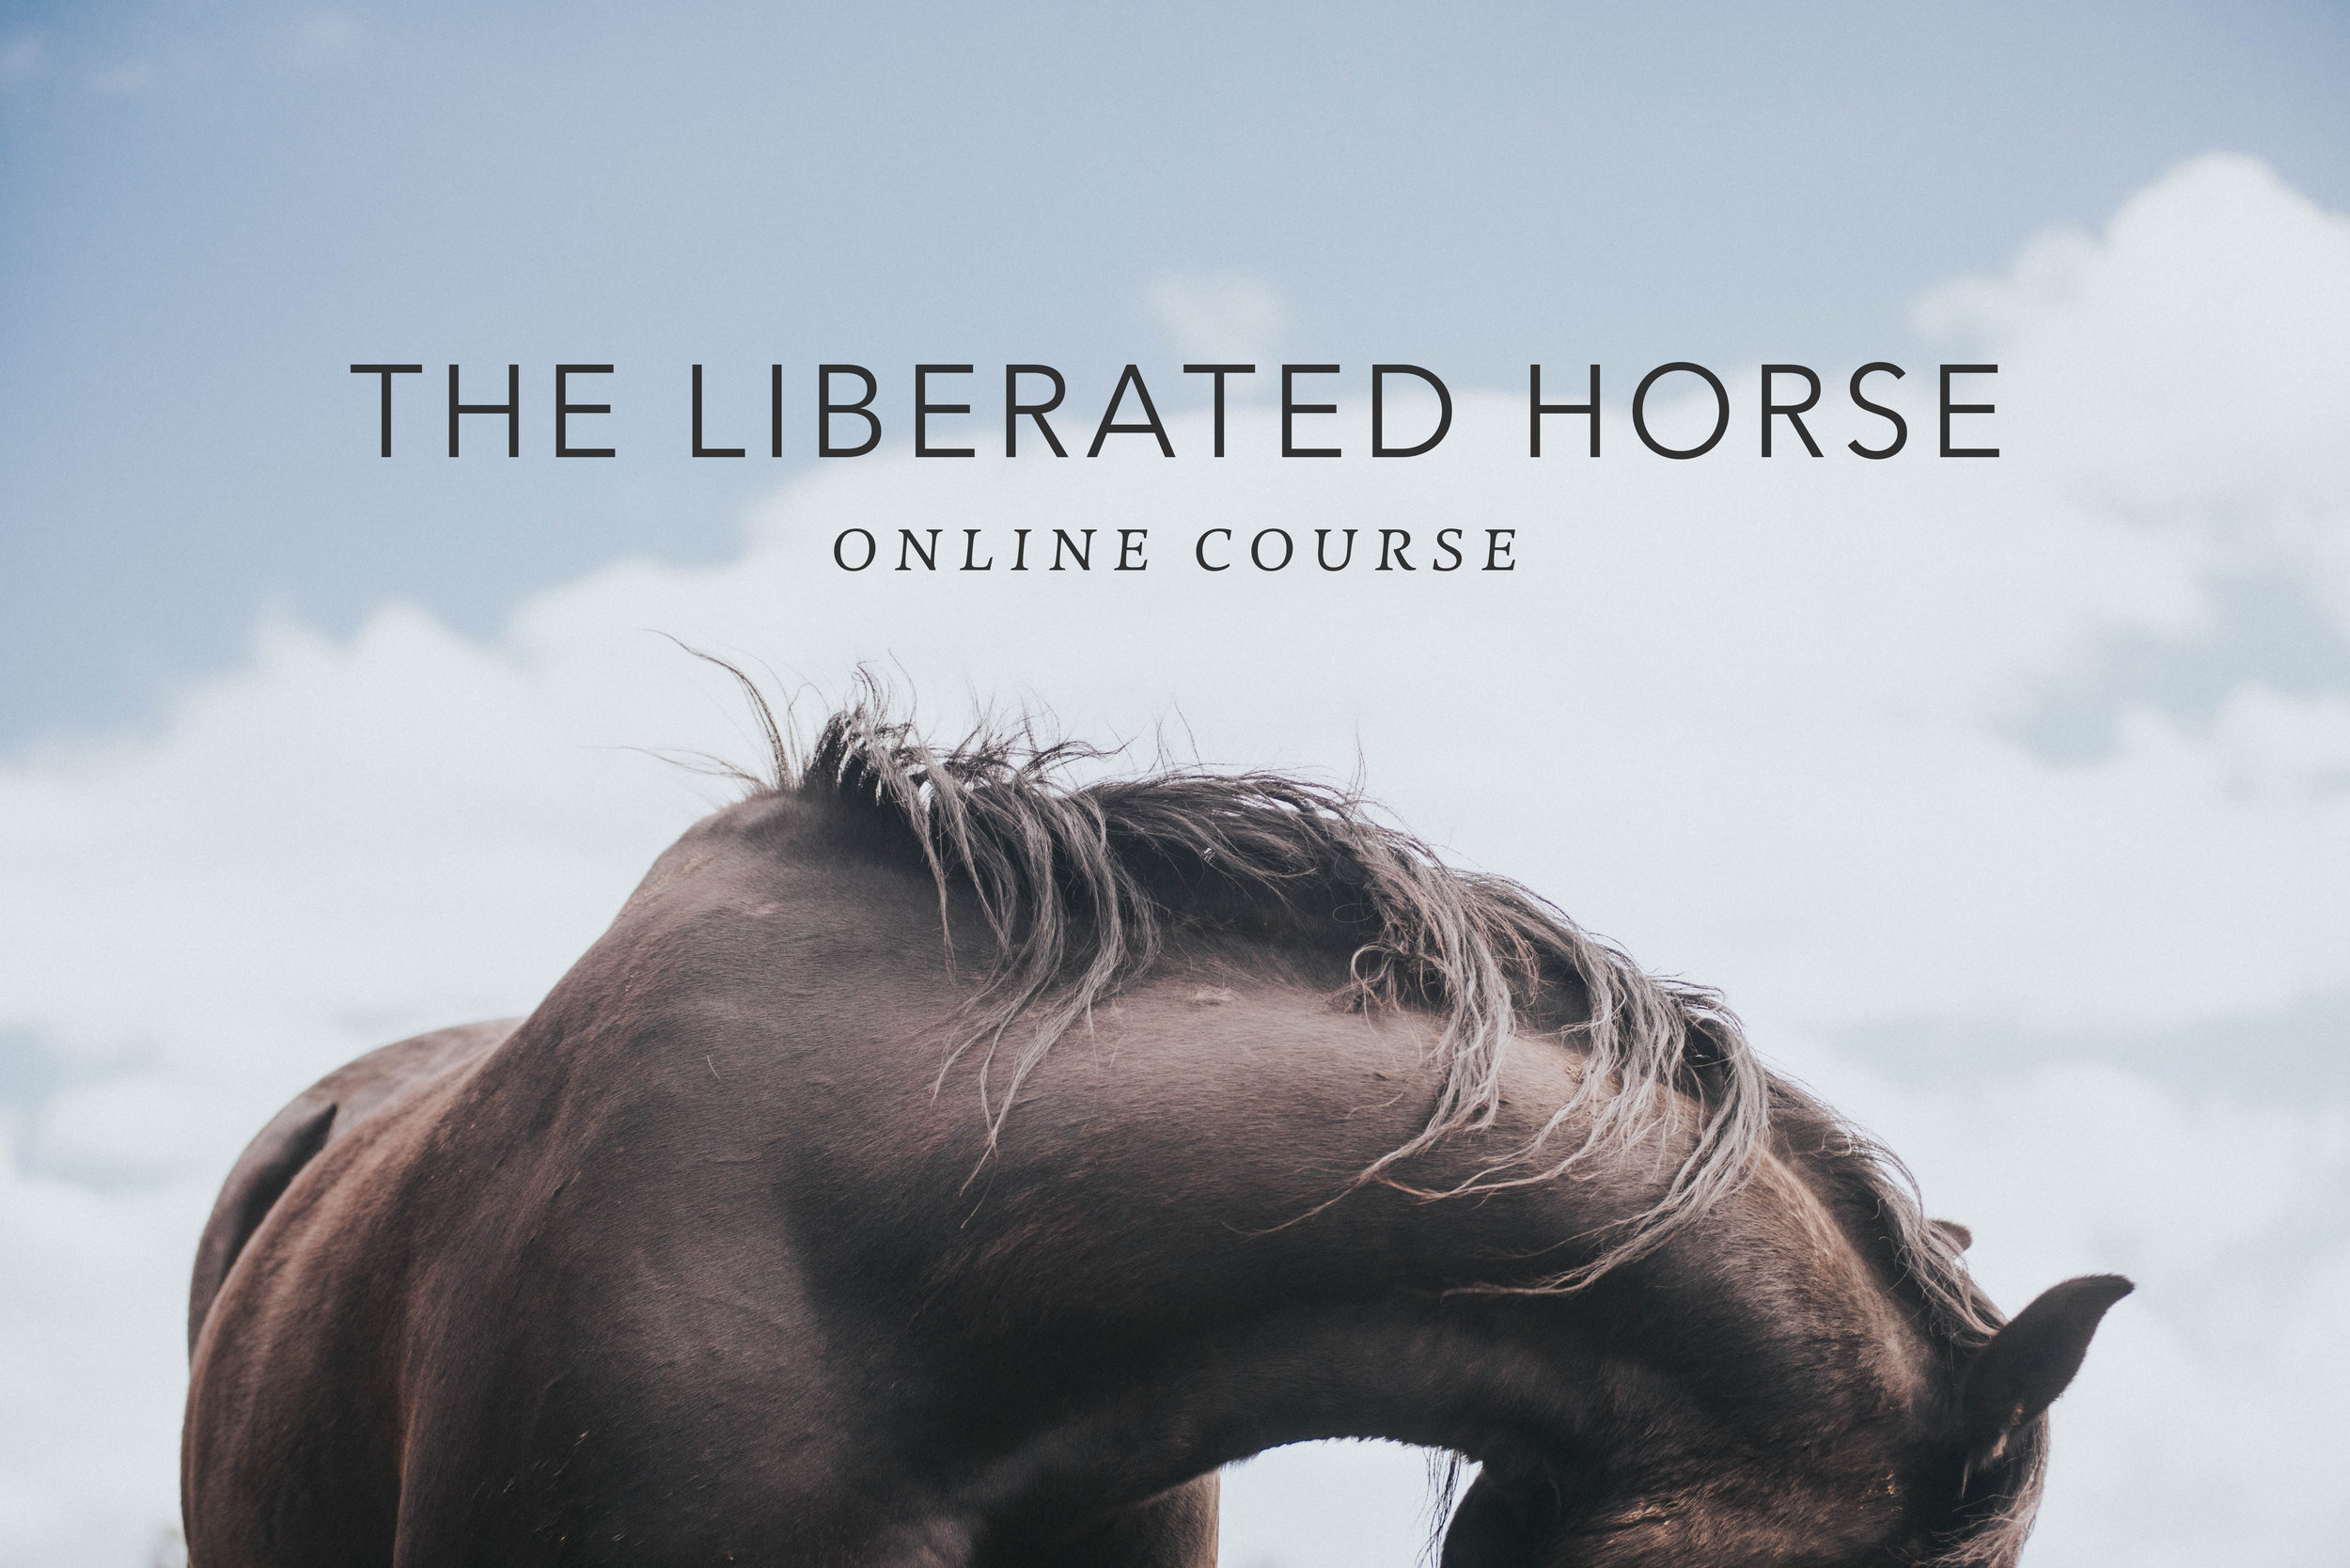 The Liberated Horse TITLE.jpg